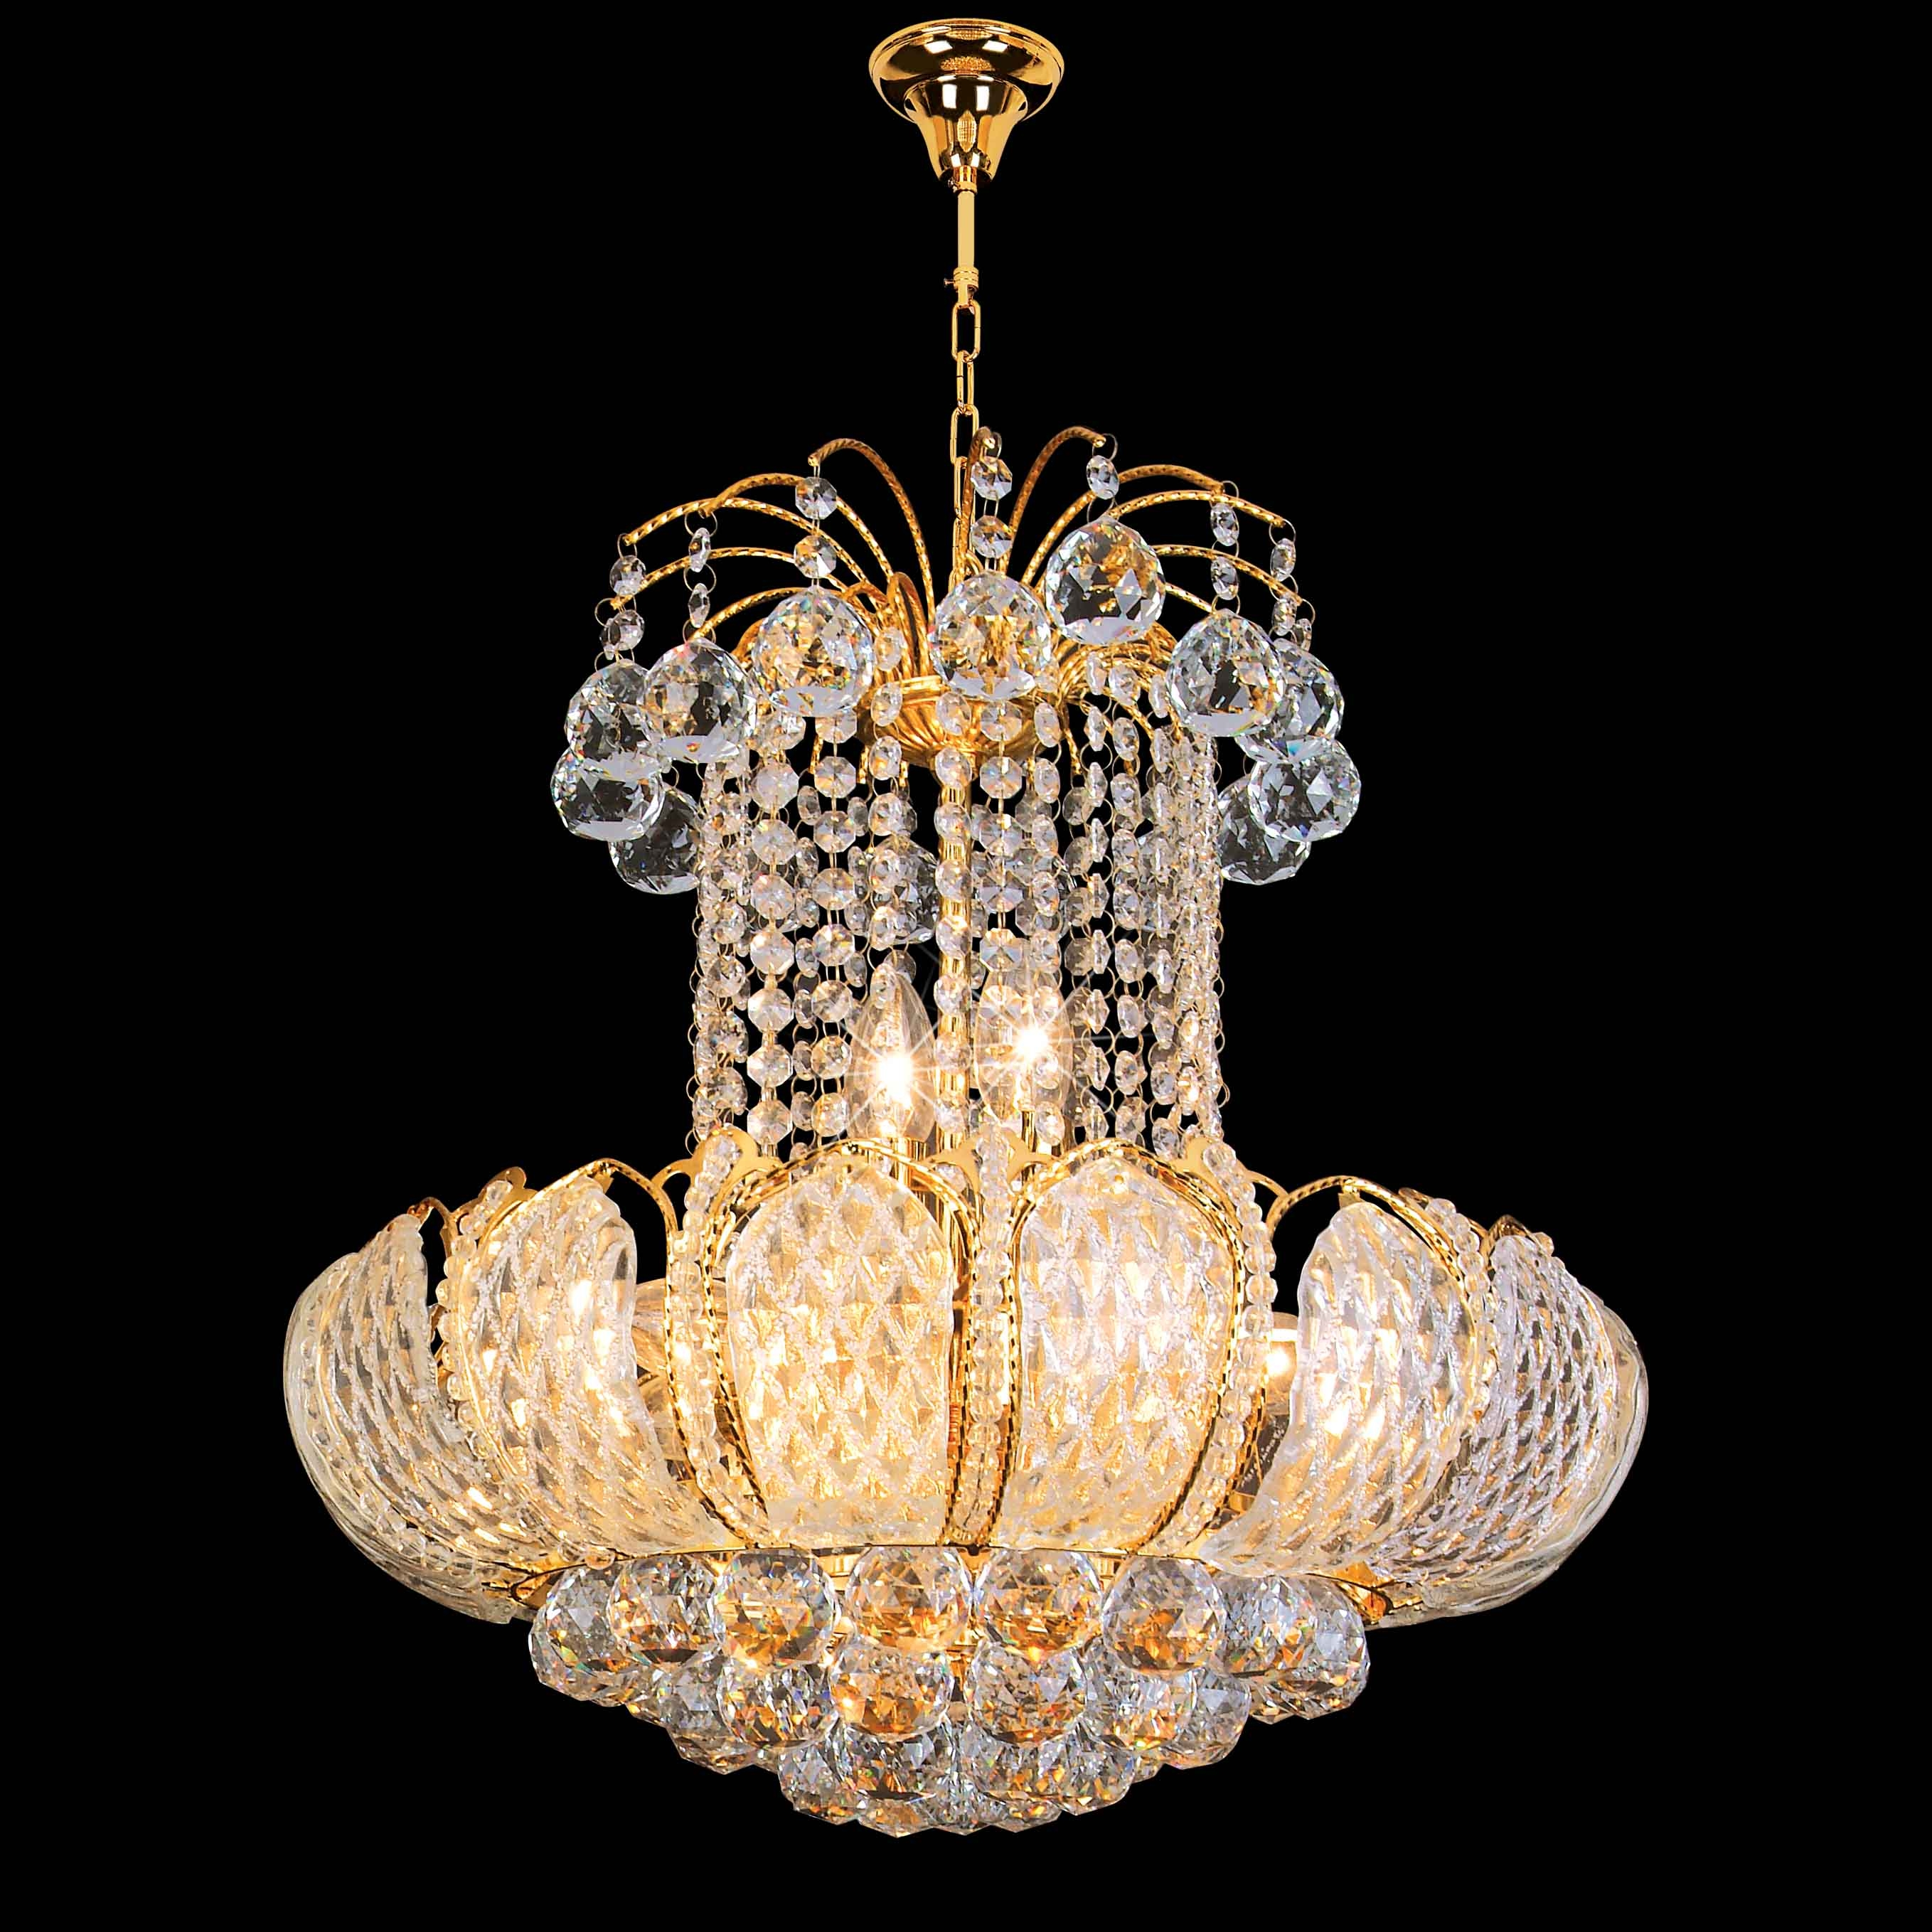 Elegant Chandelier Lights 30 On Home Decorating Ideas With Throughout Chandelier Lights (Image 11 of 15)